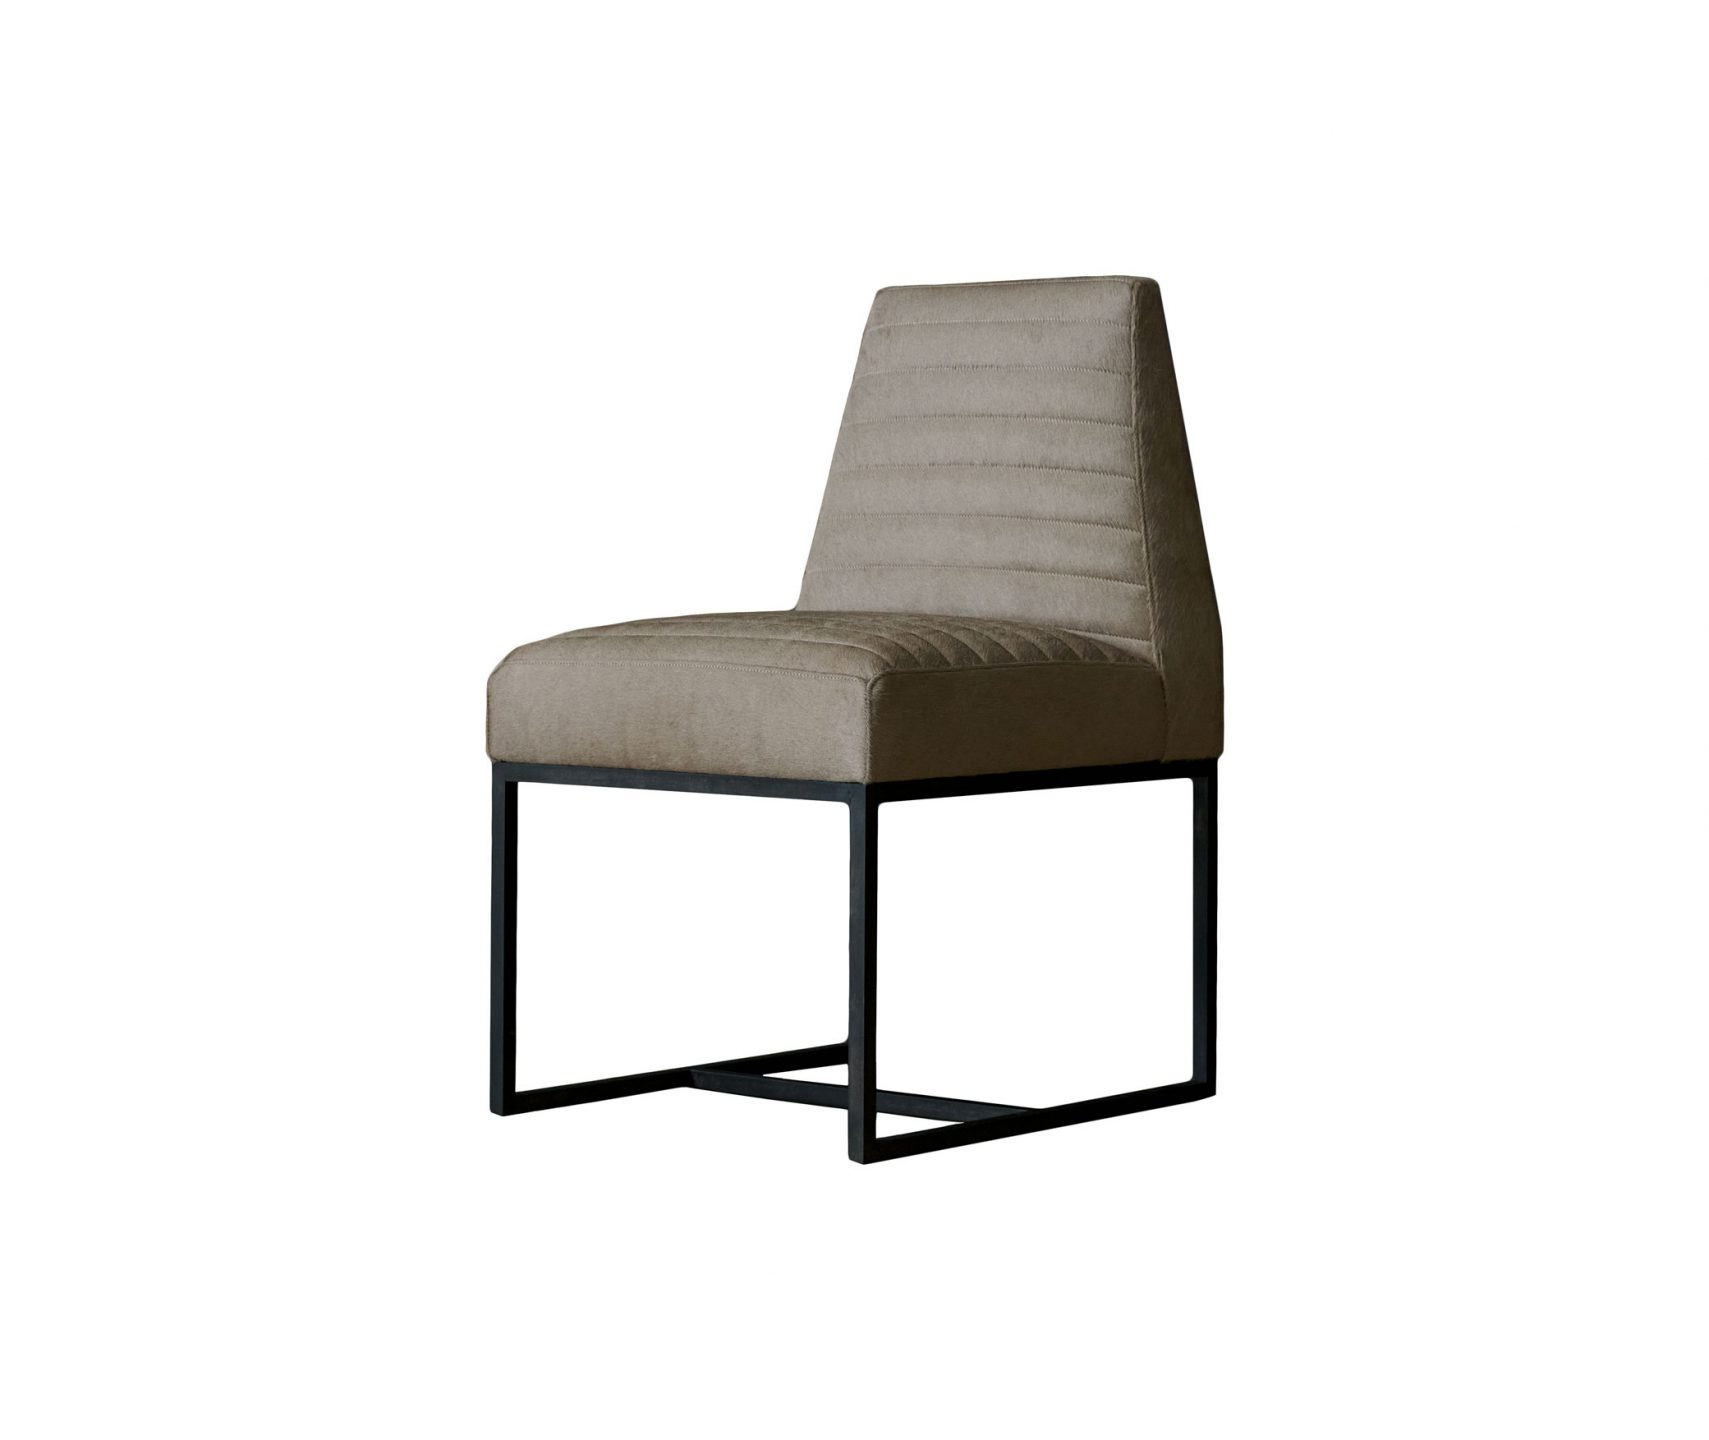 Profiles_Normal-Chanelled-Chair_int_products